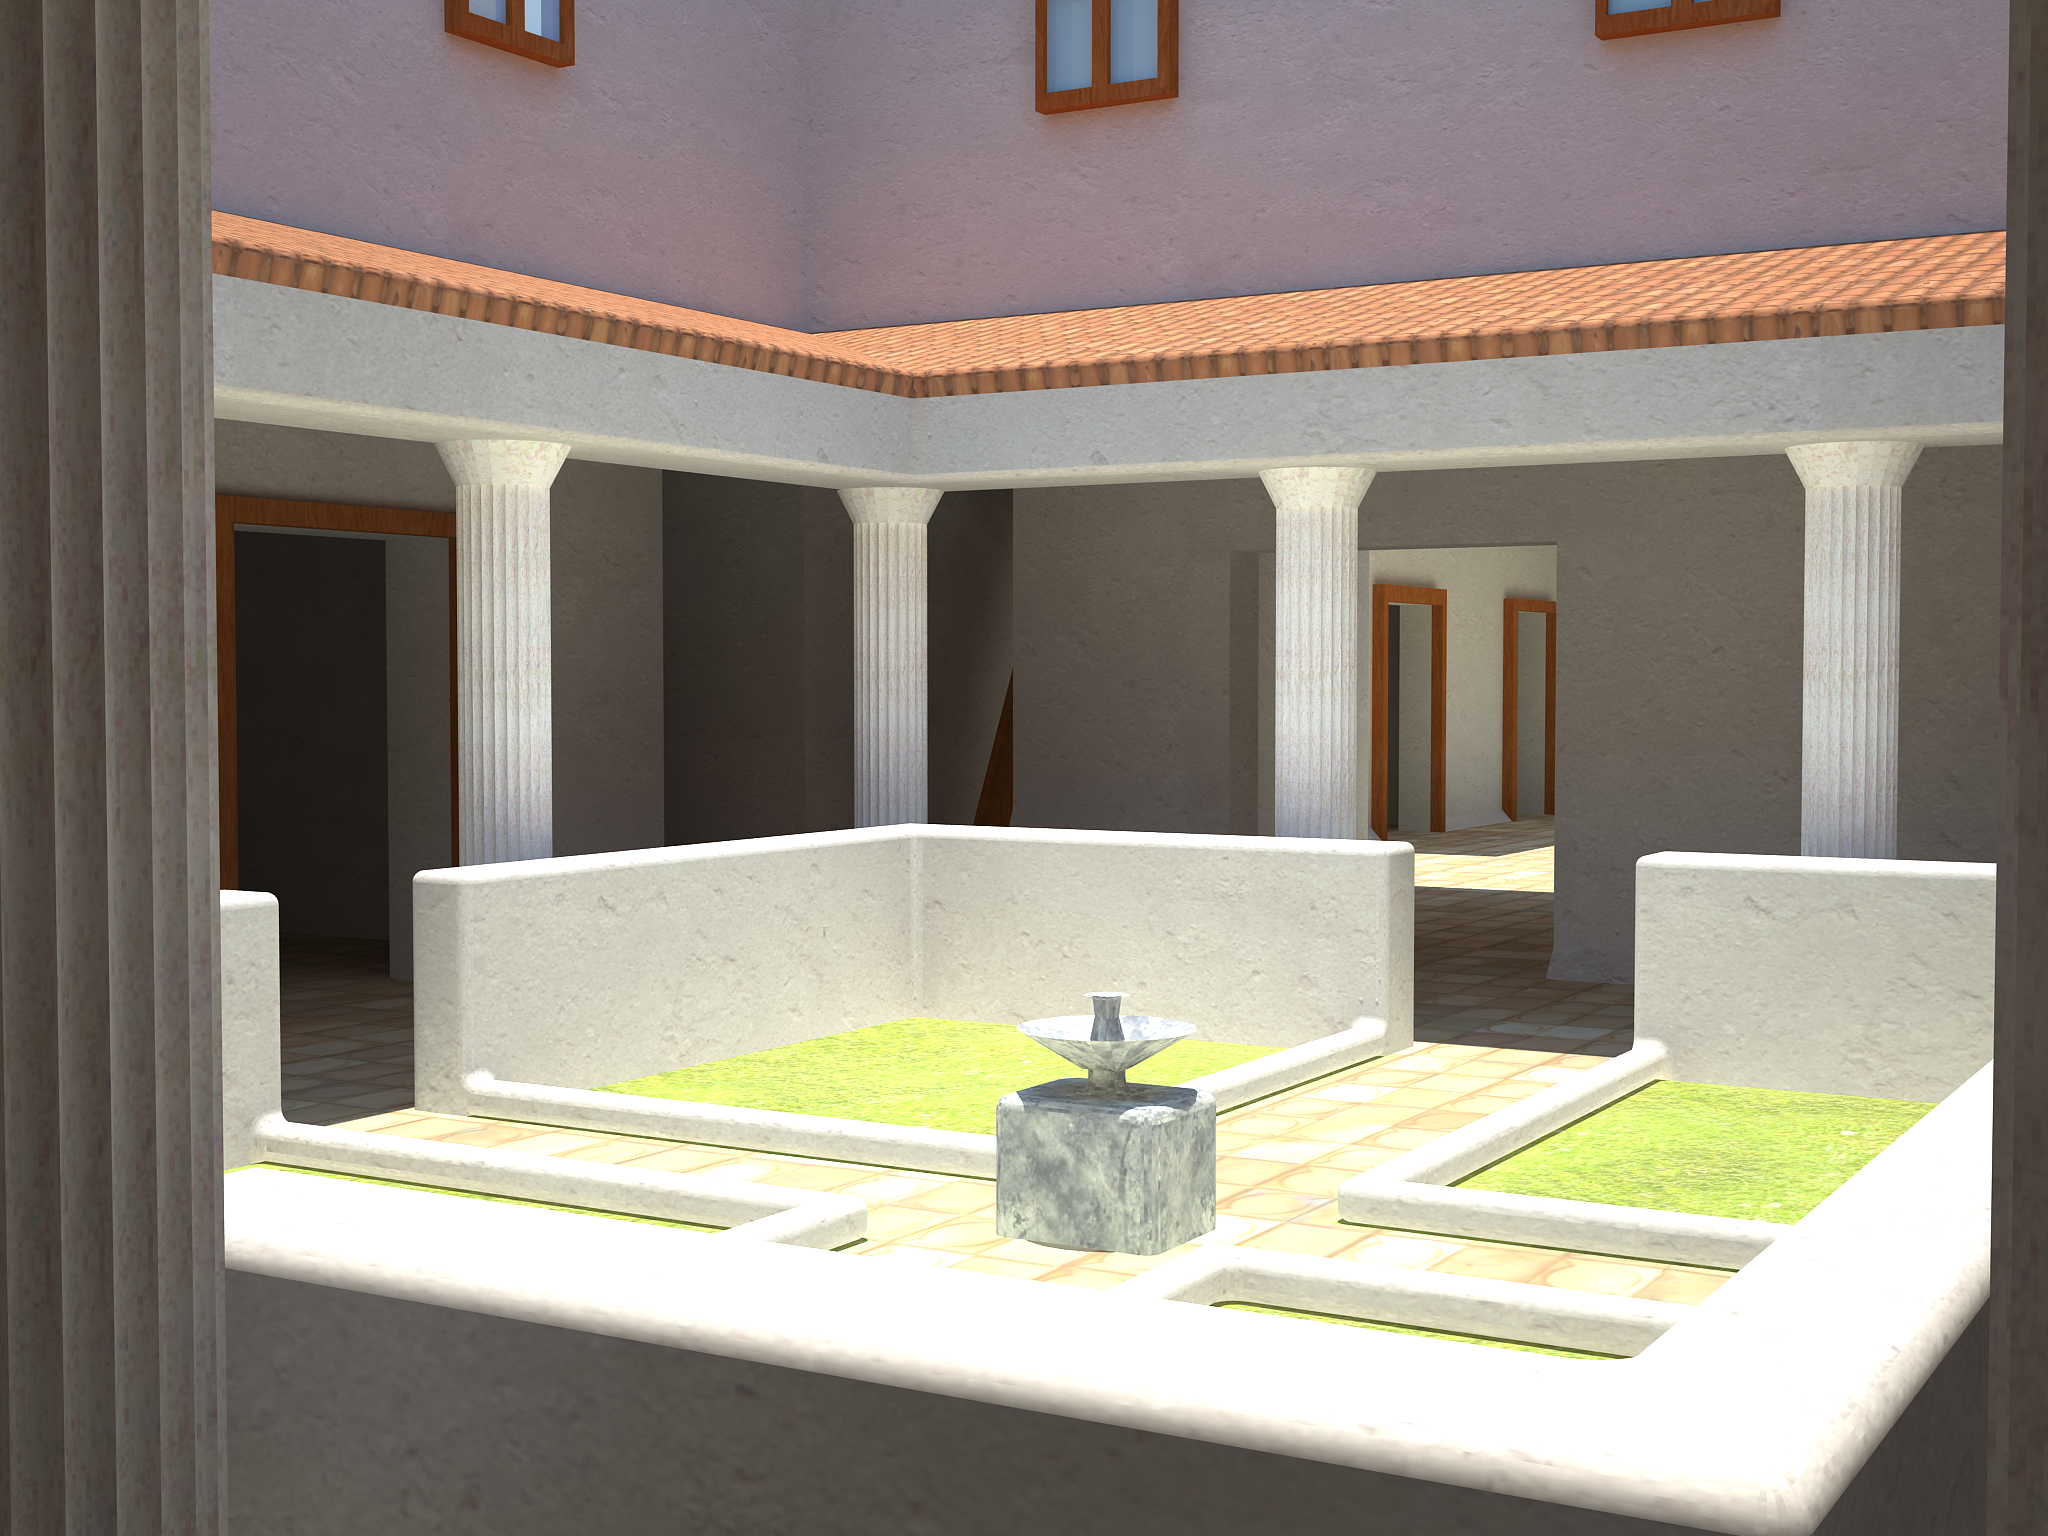 Roman Villa Reconstruction Preview 3d Reconstruction In